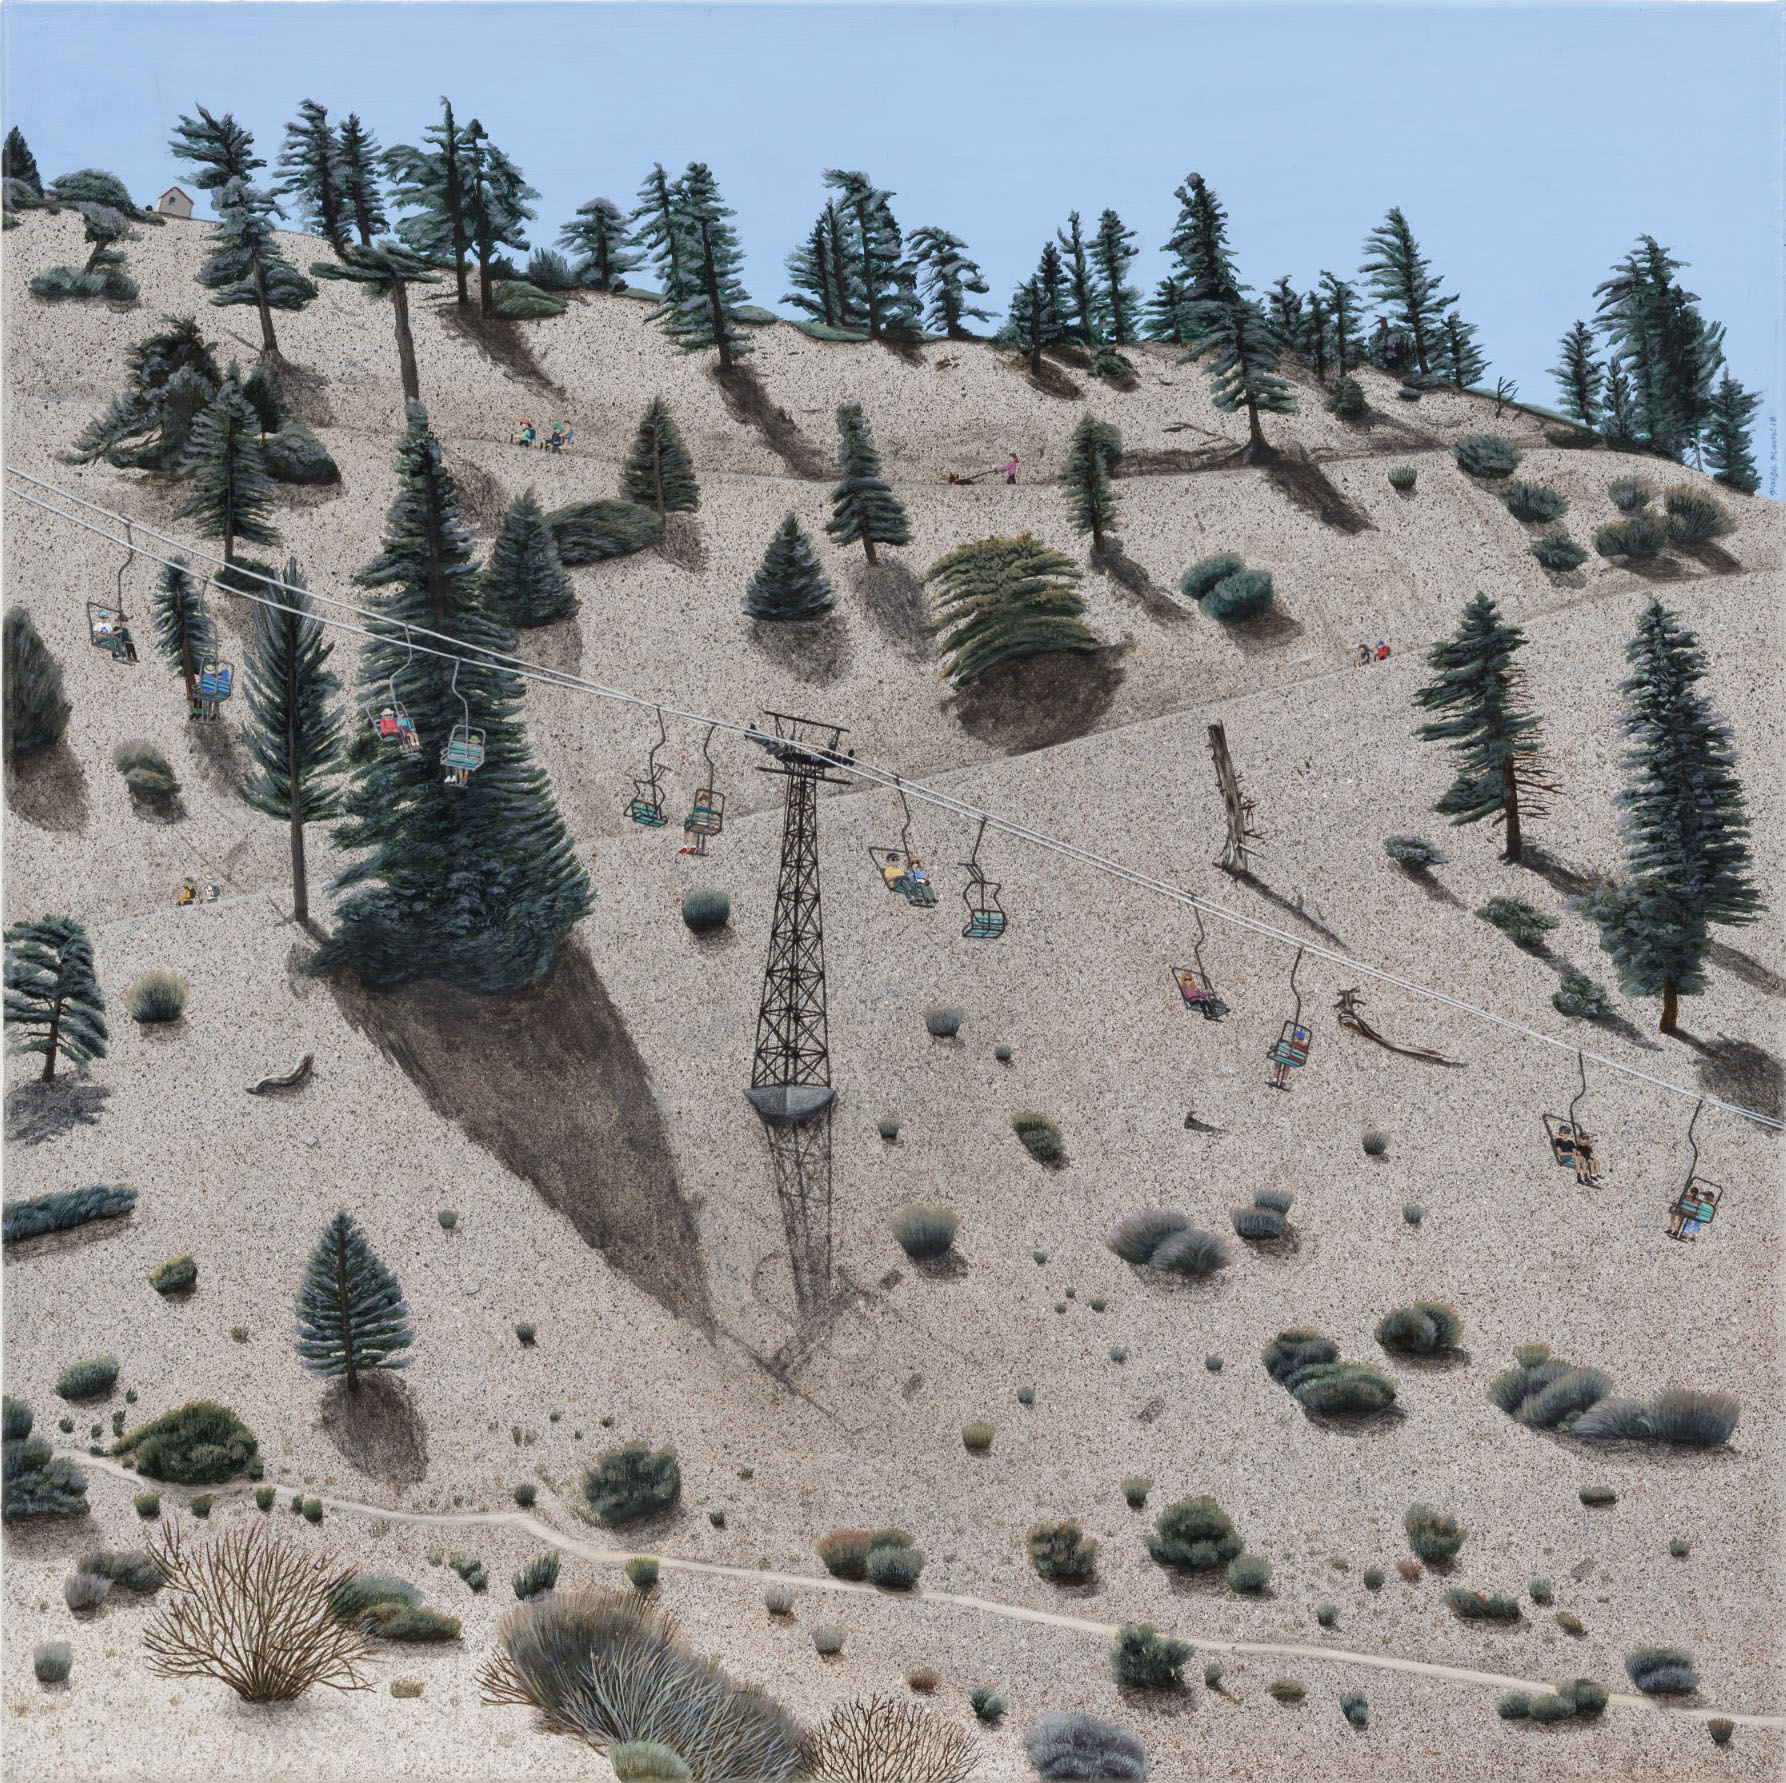 Paige Jiyoung Moon. <em>Baldy Road</em>, 2018. Acrylic on canvas, 18 x 18 inches (45.7 x 45.7 cm)